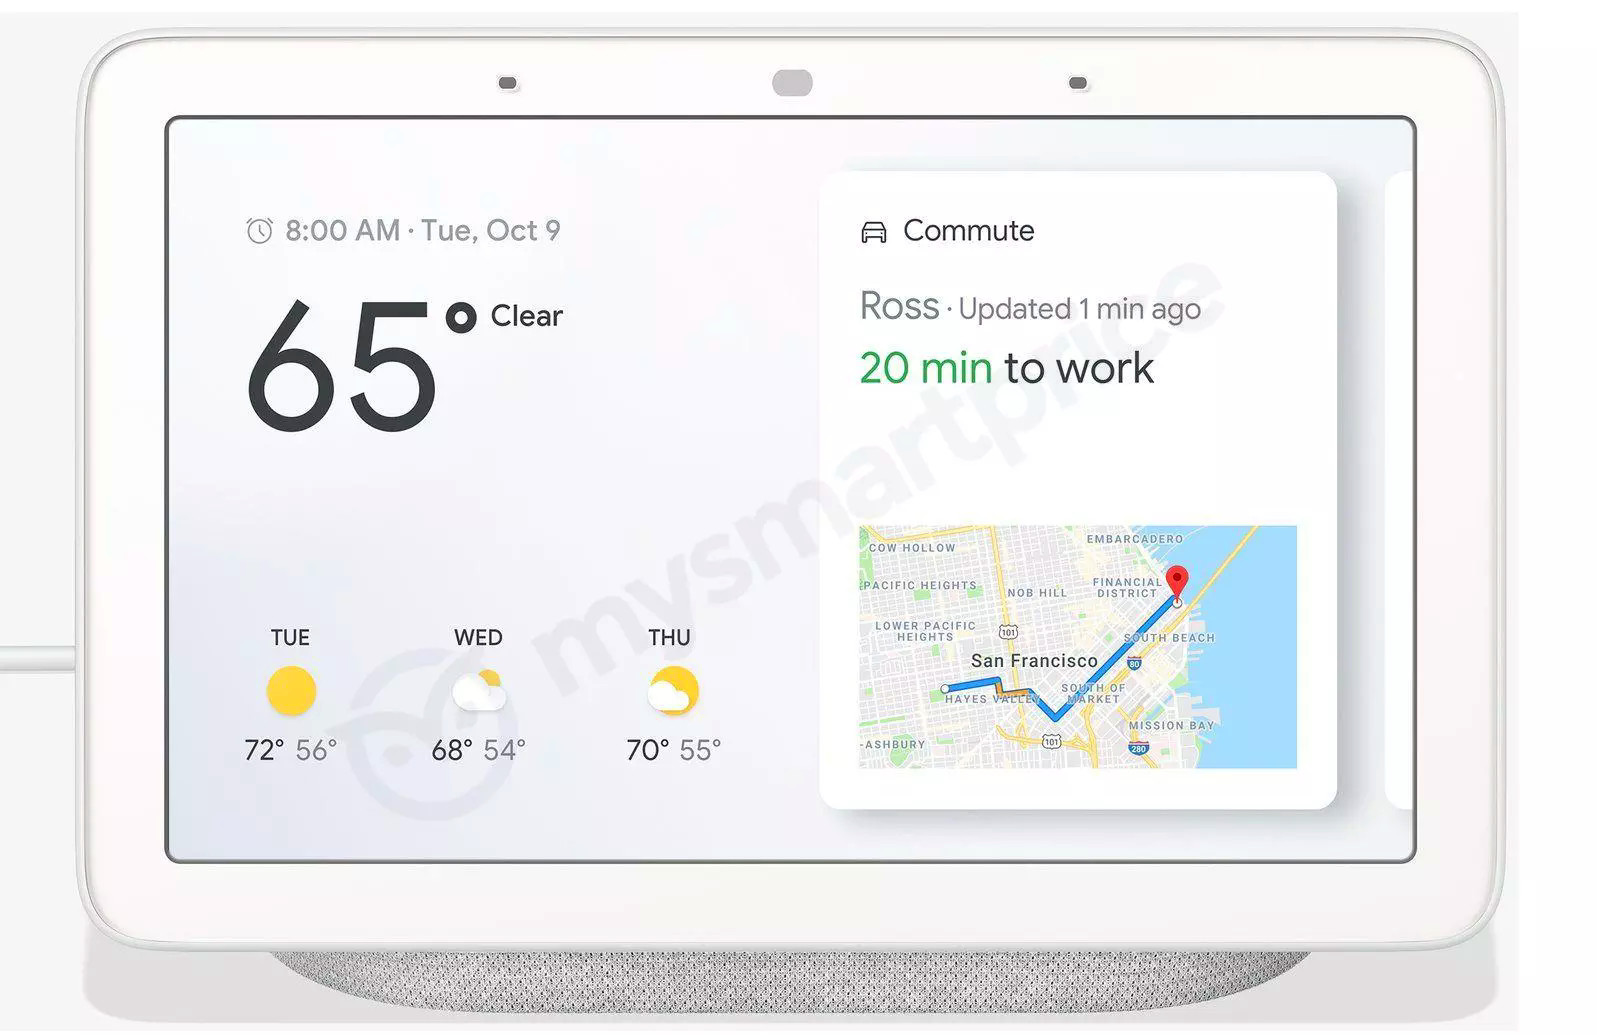 Google Home Hub is a smart speaker with a 7-inch display